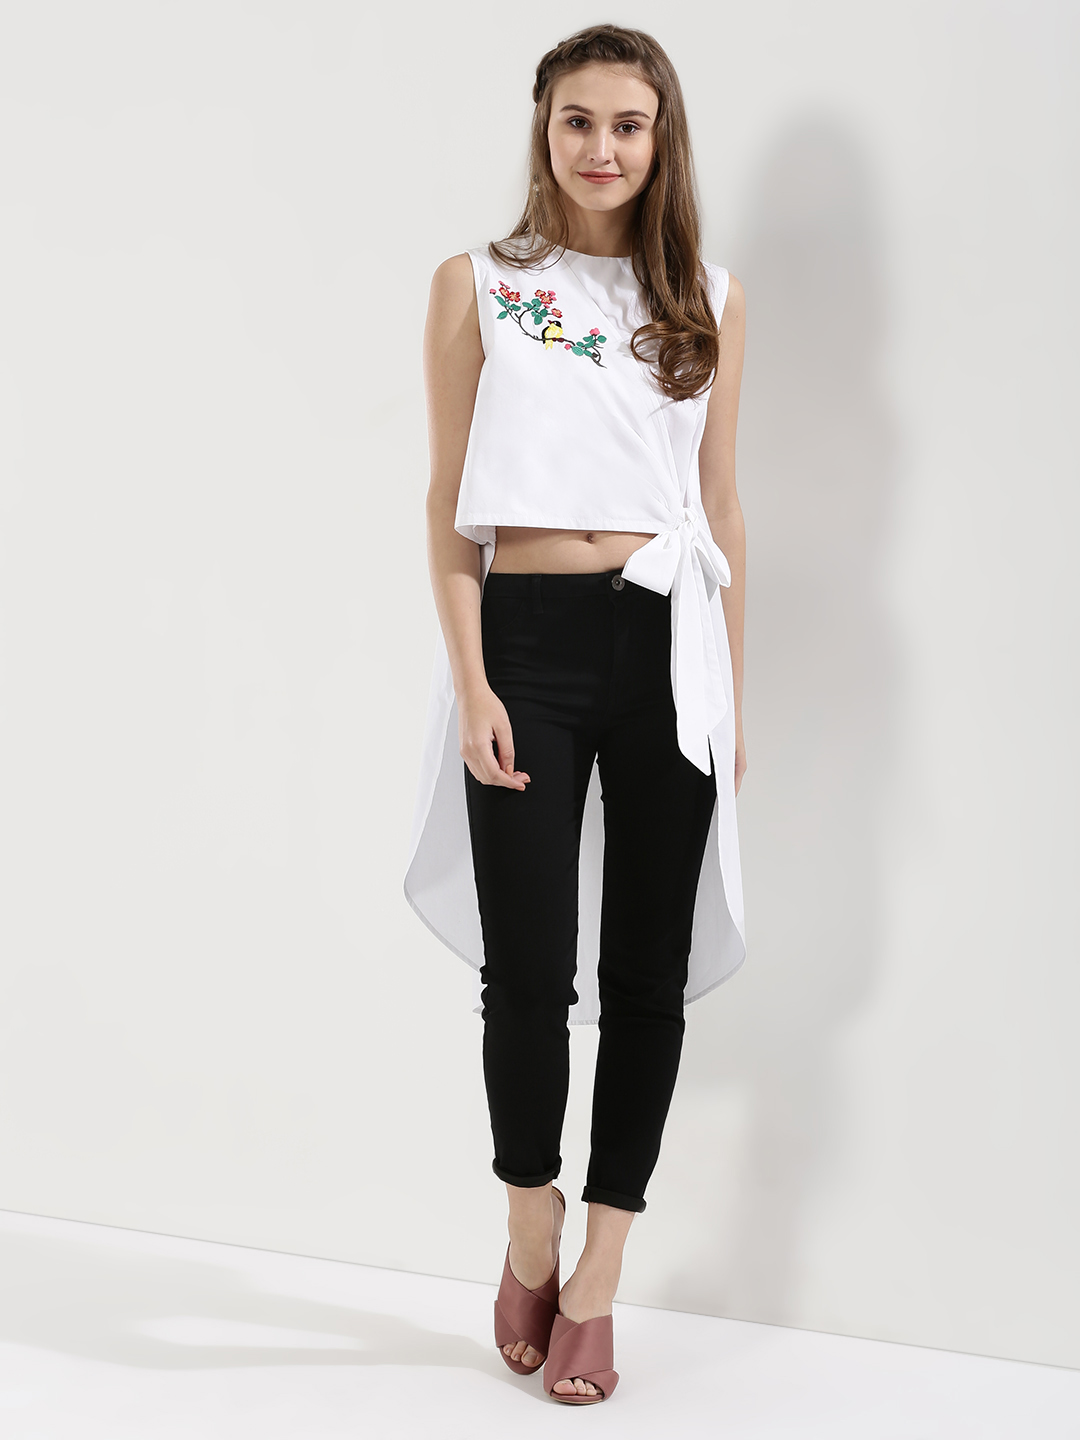 Ri-Dress White High Low Top With Embroidery Detail 1